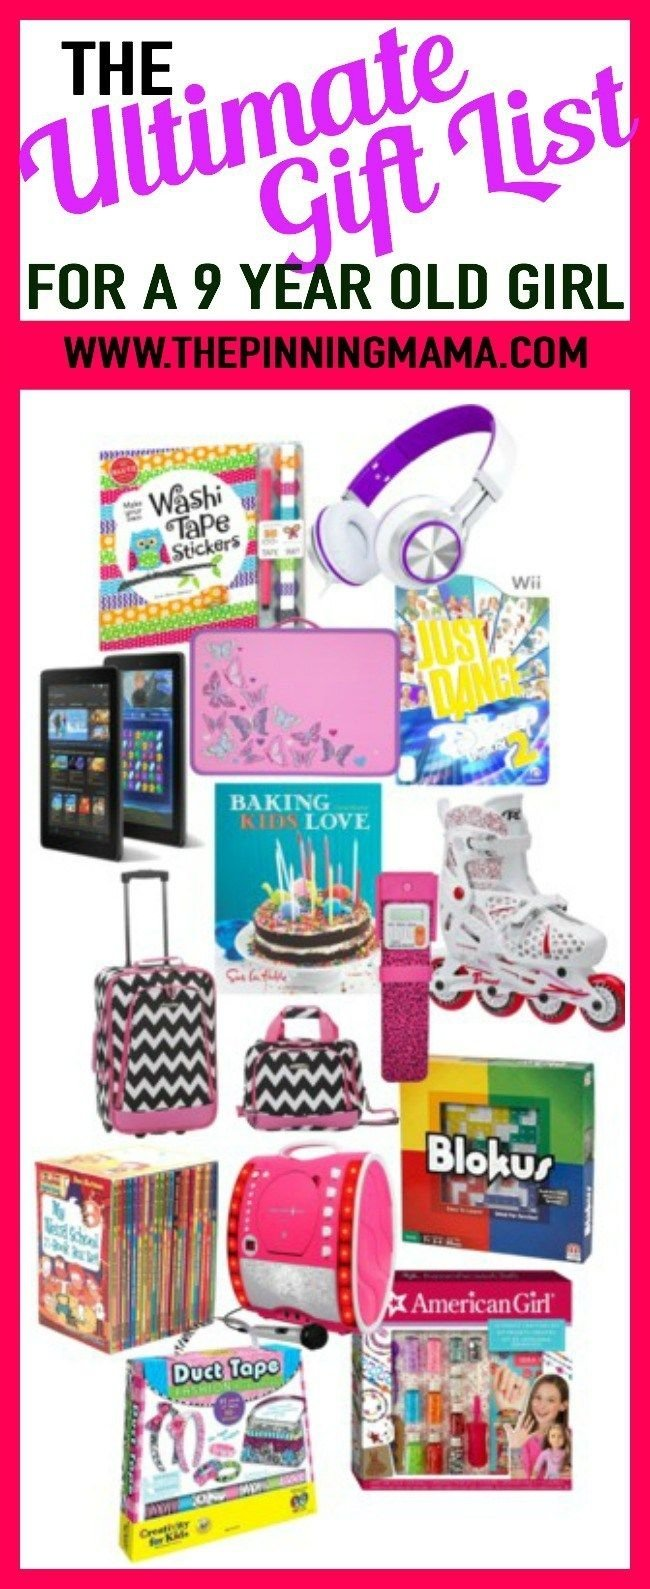 10 Lovable Gift Ideas For Girls Age 9 the ultimate gift list for a 9 year old girl top toys girls age 9 11